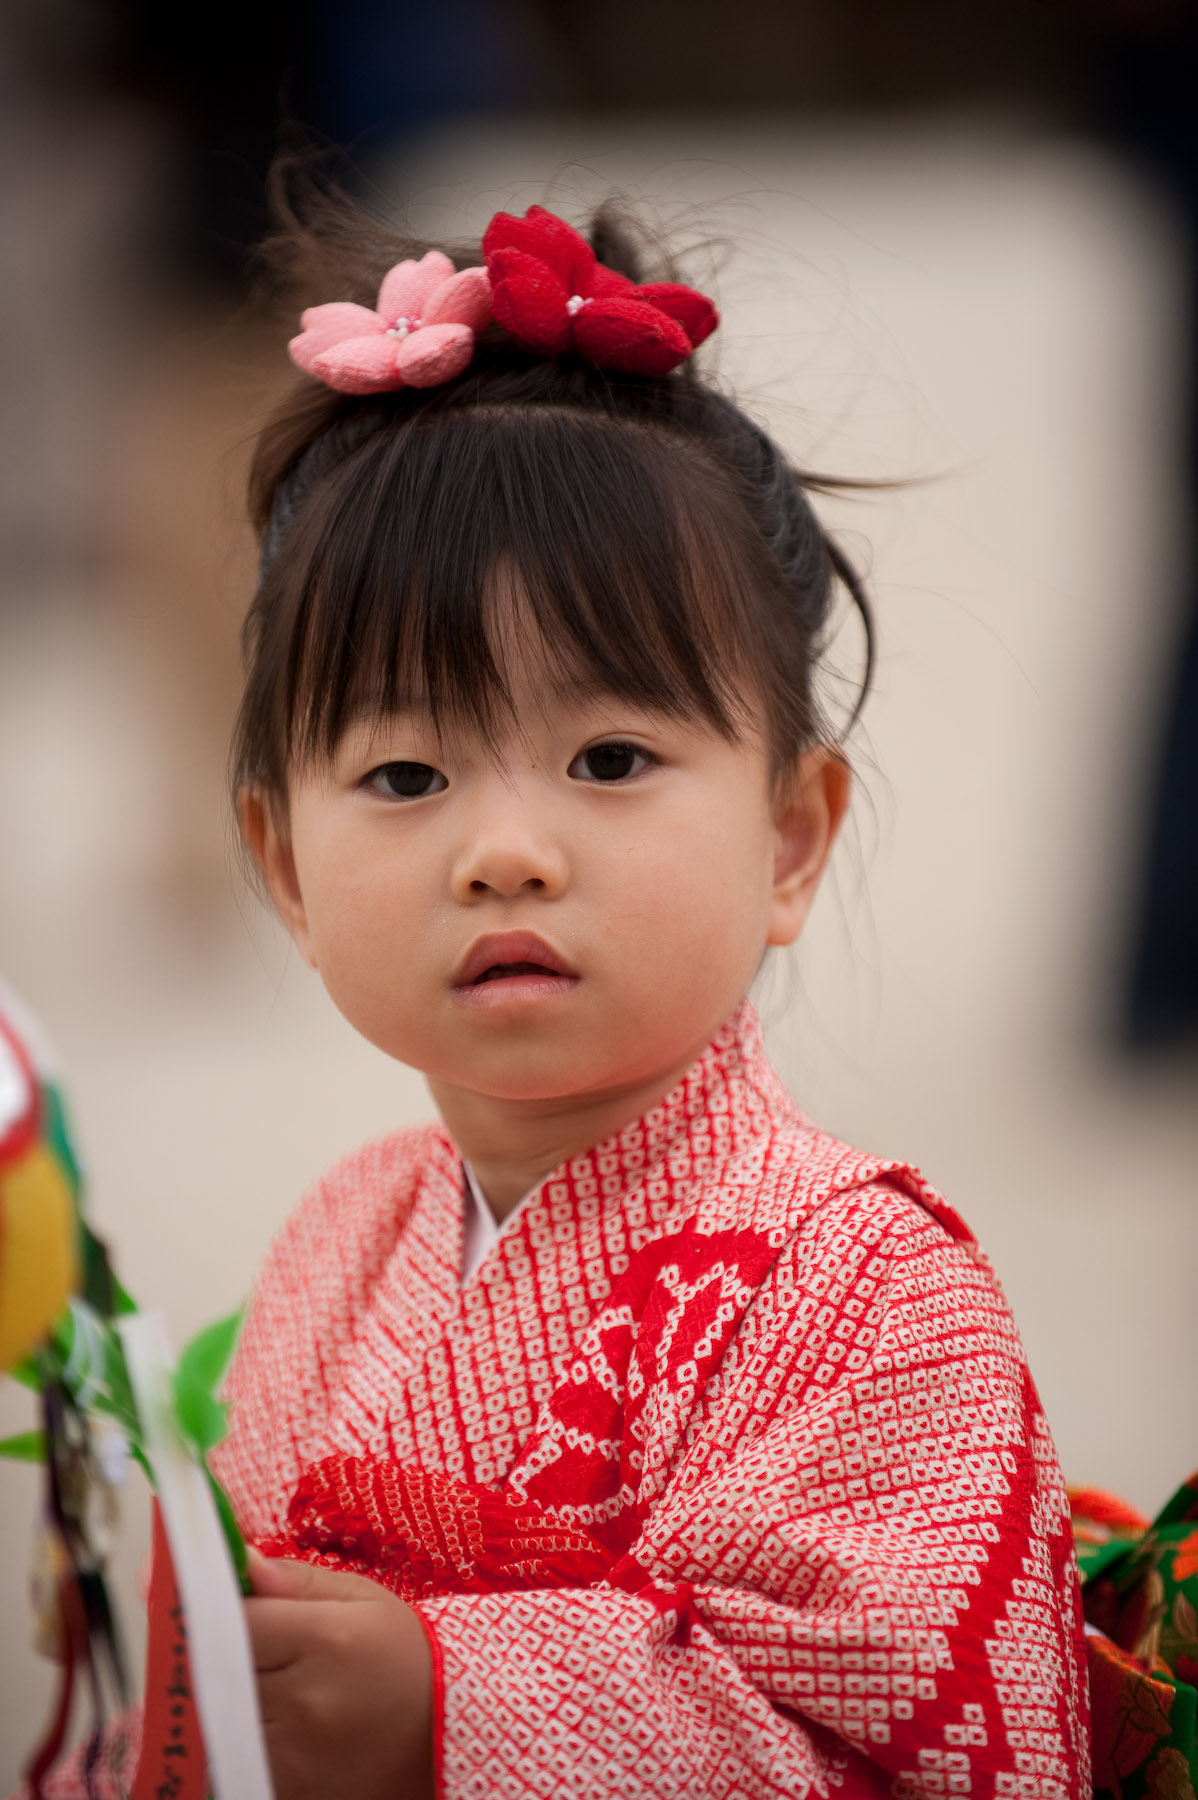 Little Beauty Royalty Free Stock Images: Jeffrey Friedl's Blog » Kids In Kimono: Cute Enough To Eat